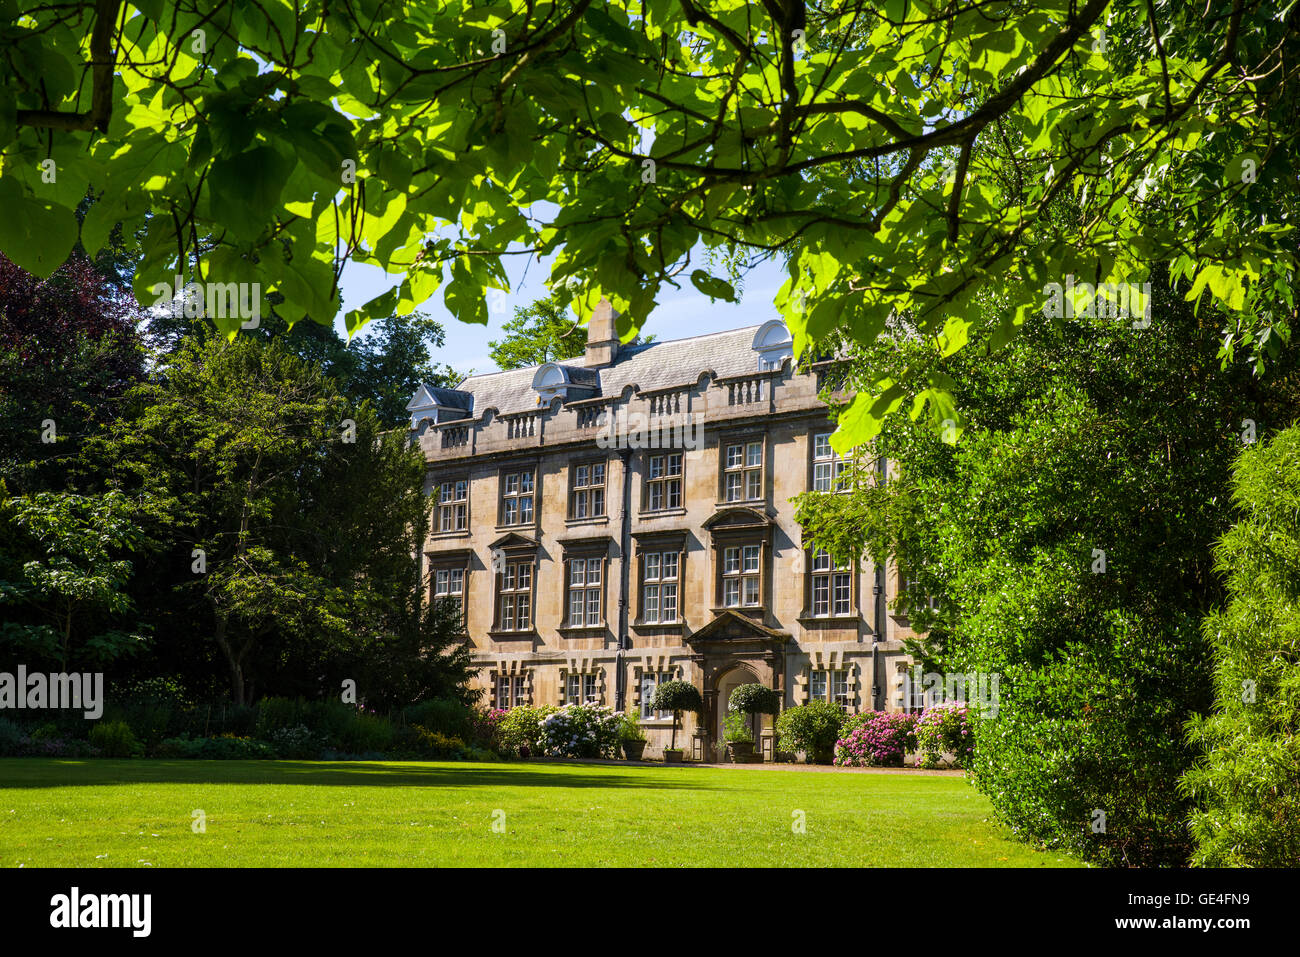 CAMBRIDGE, UK - JULY 18TH 2016: A beautiful view of one of the buildings of Christ's College from Fellows Garden - Stock Image